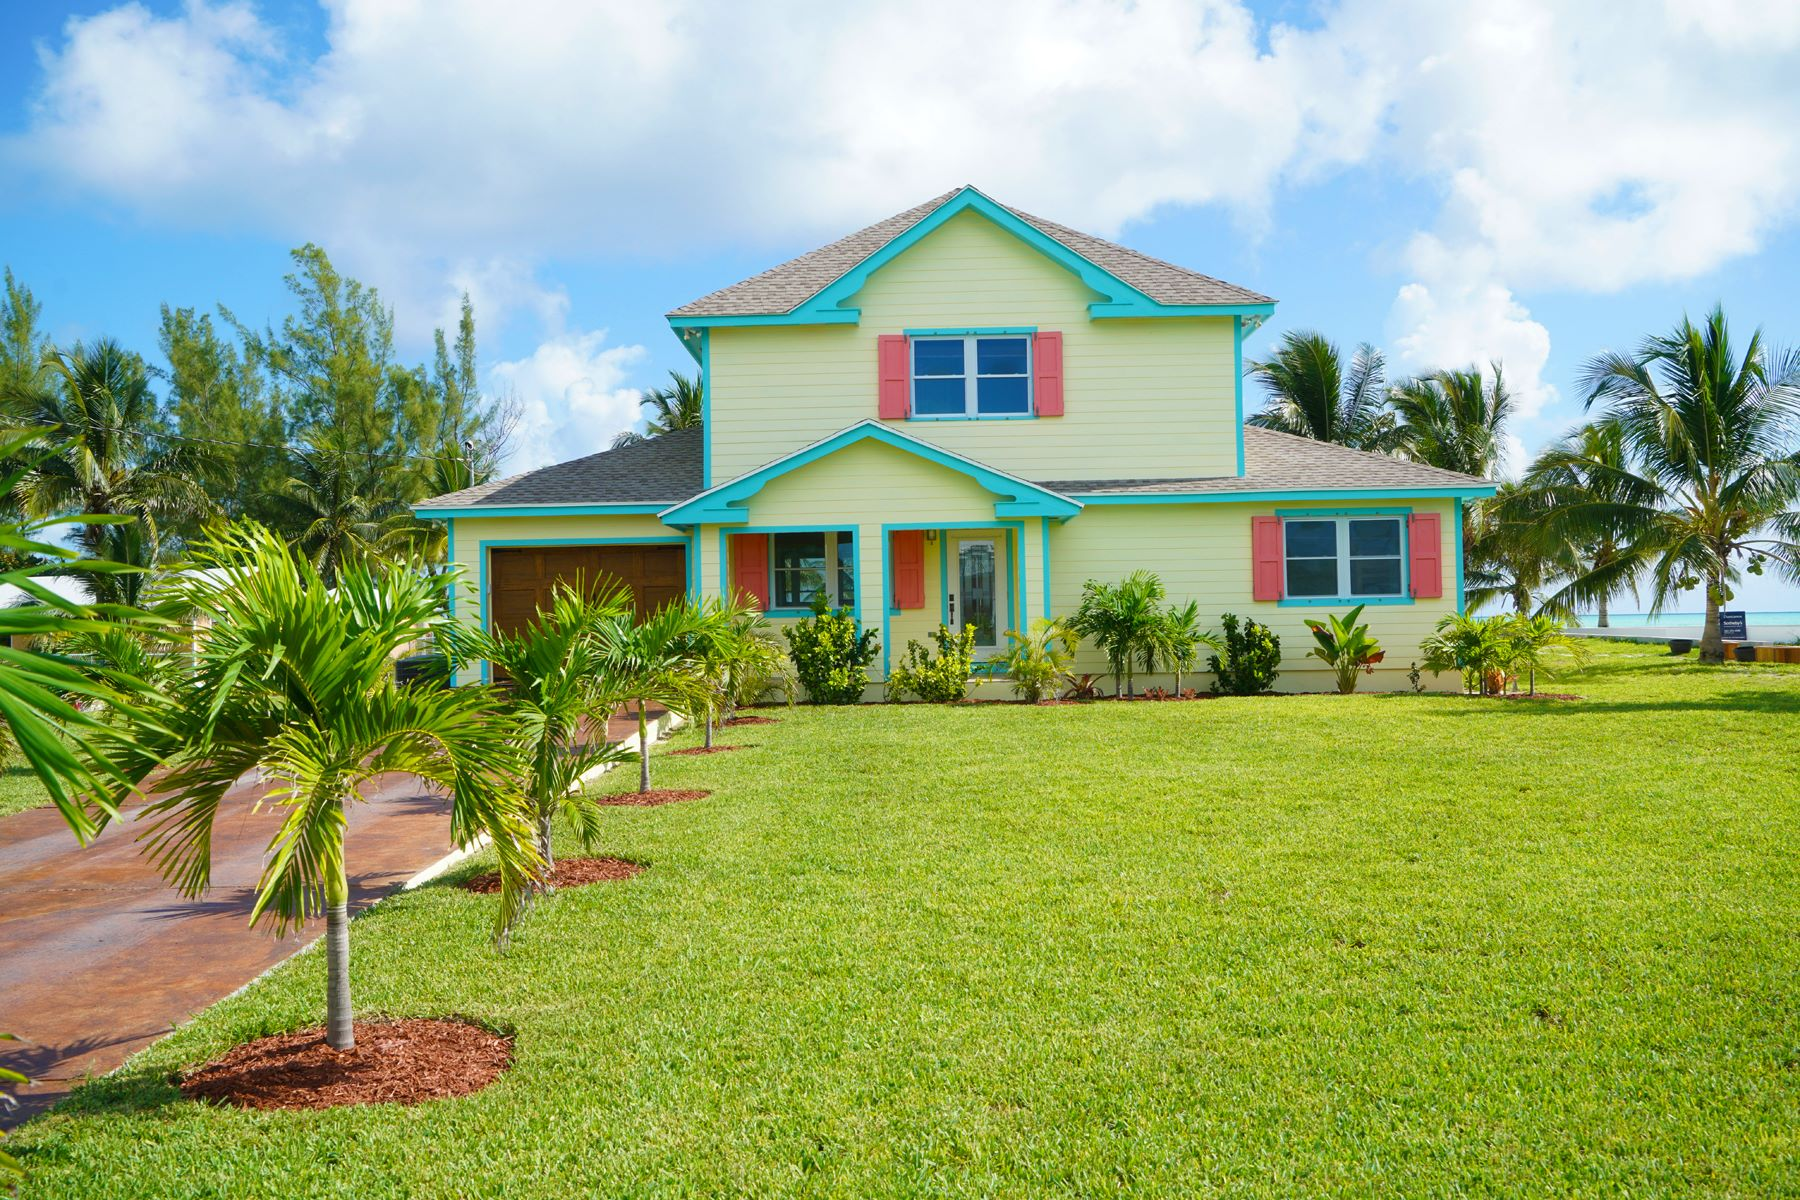 Maison unifamiliale pour l Vente à Seas the Day - Beachfront Spanish Wells, Eleuthera Bahamas